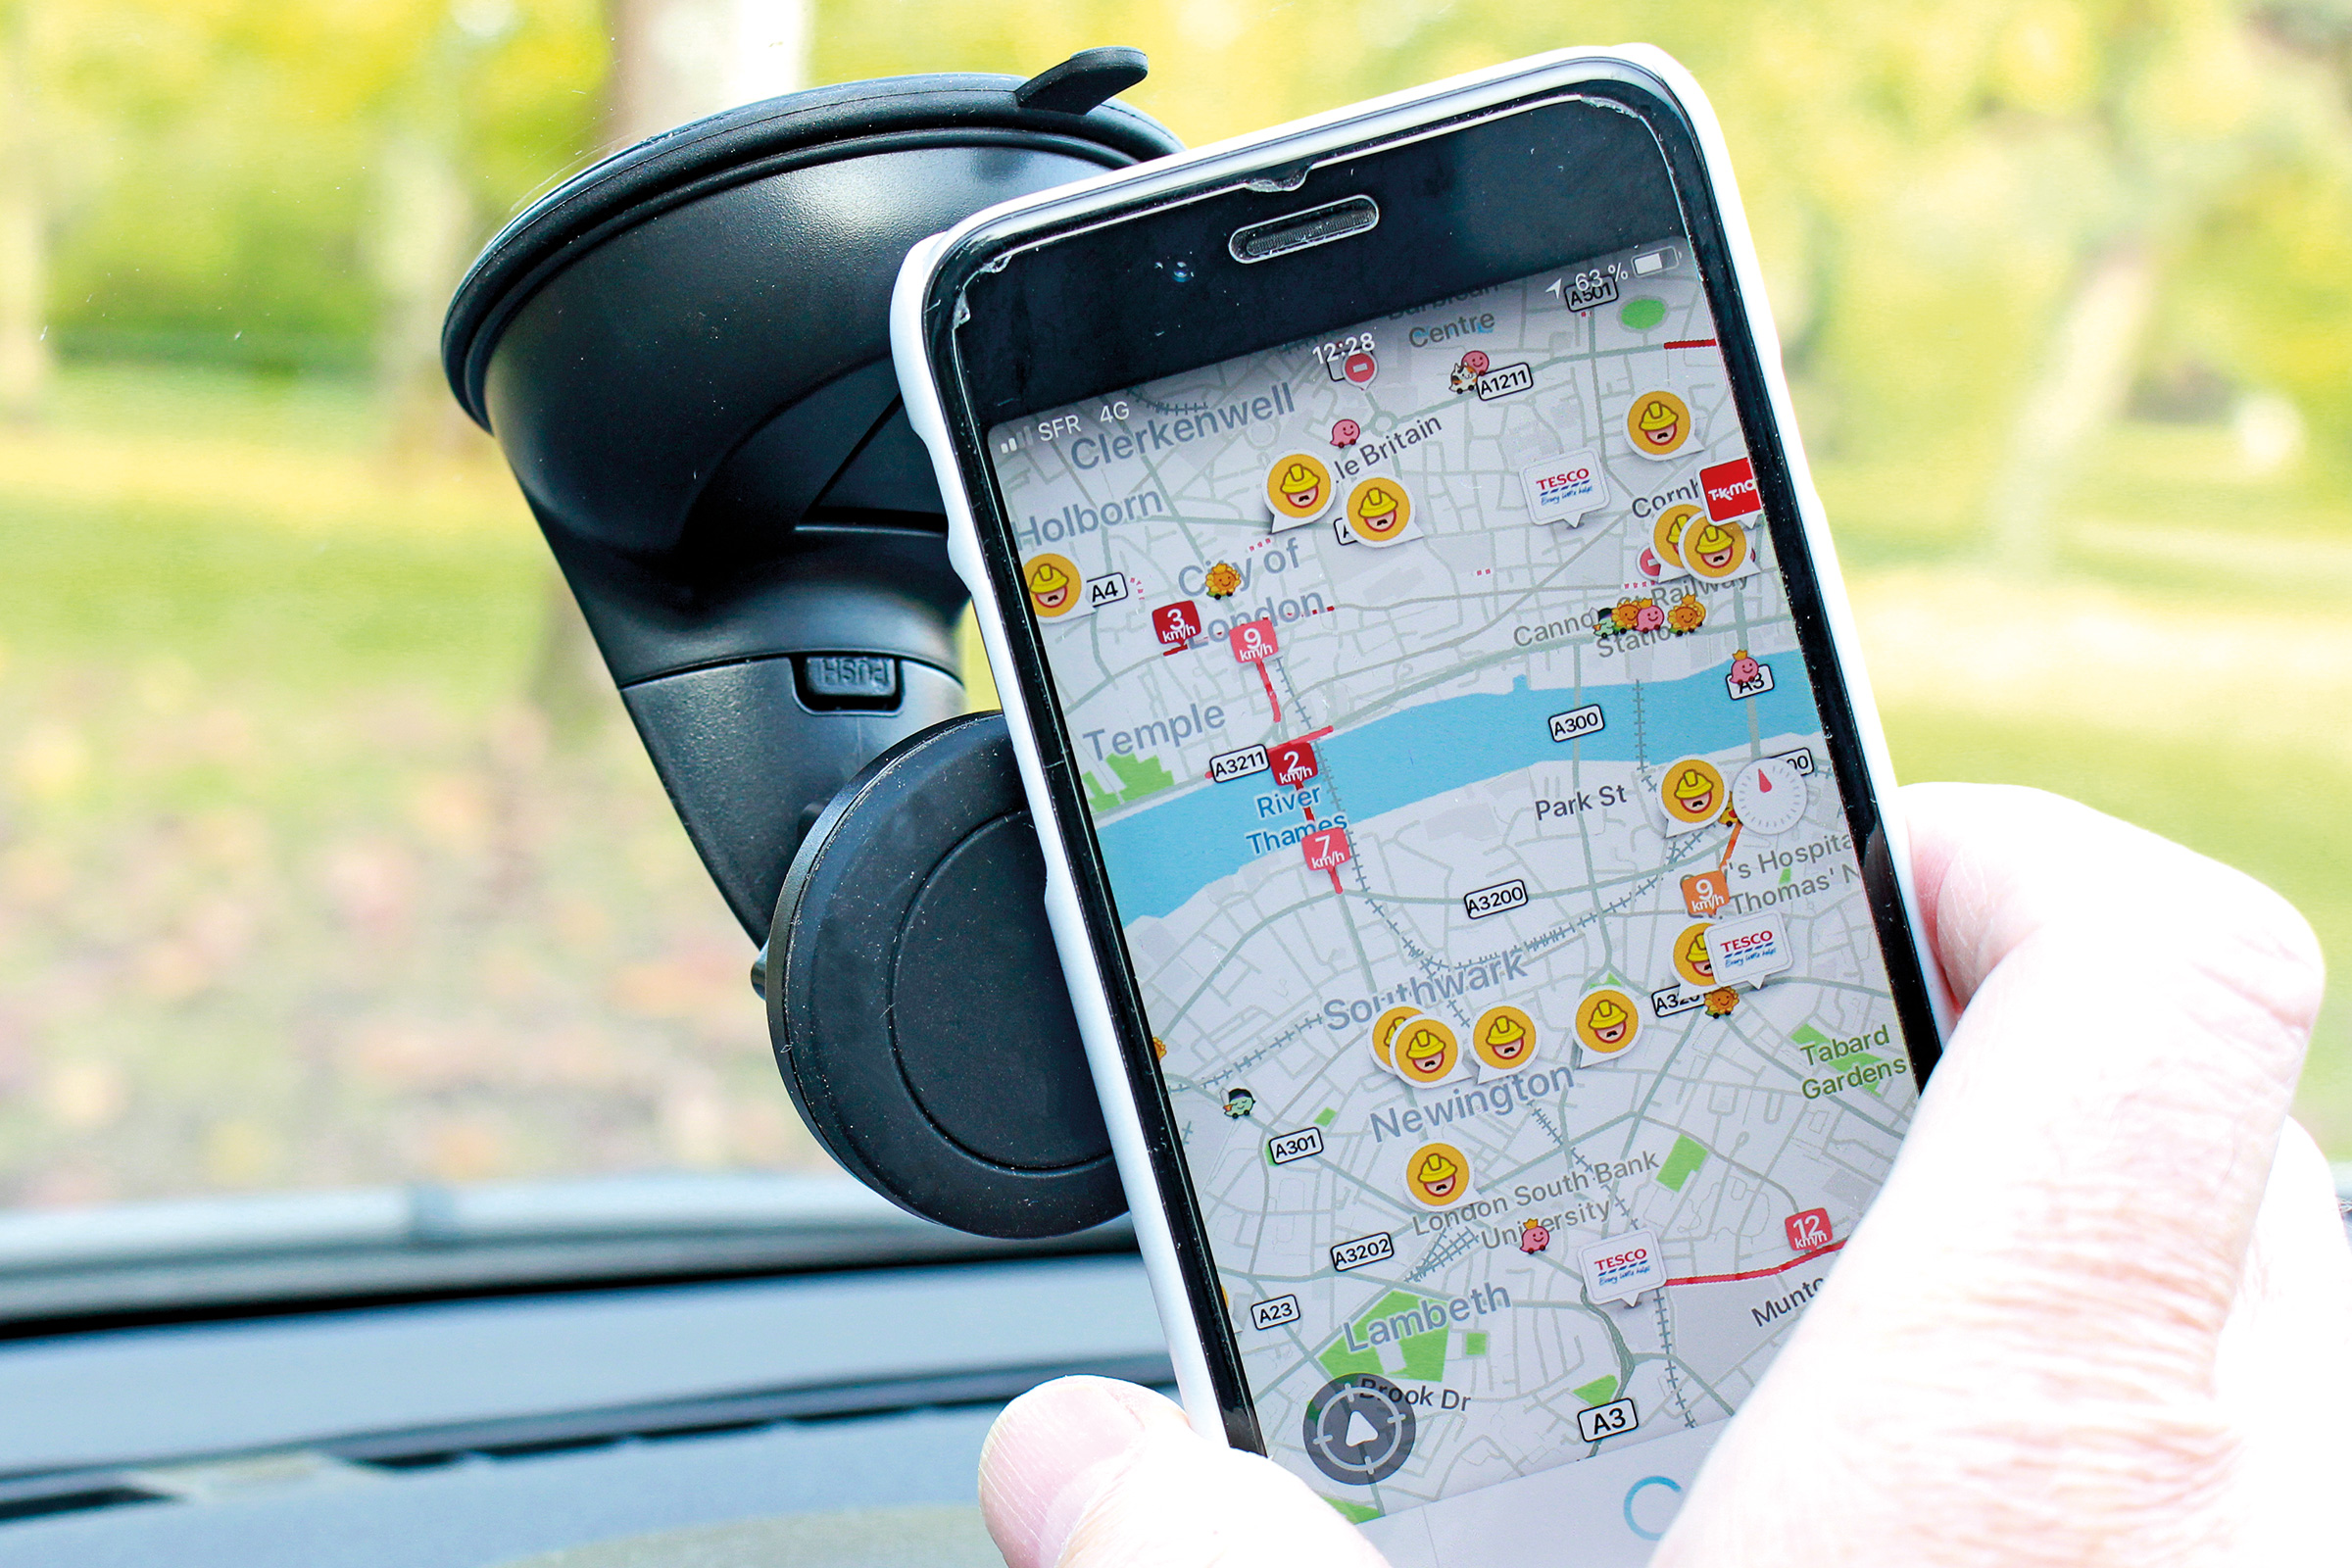 Car Phone Mount,Phone Holder for Car,KNOWAIR Anti-Slip Phone Holder Compatible with iPhone Samsung Android Smartphones